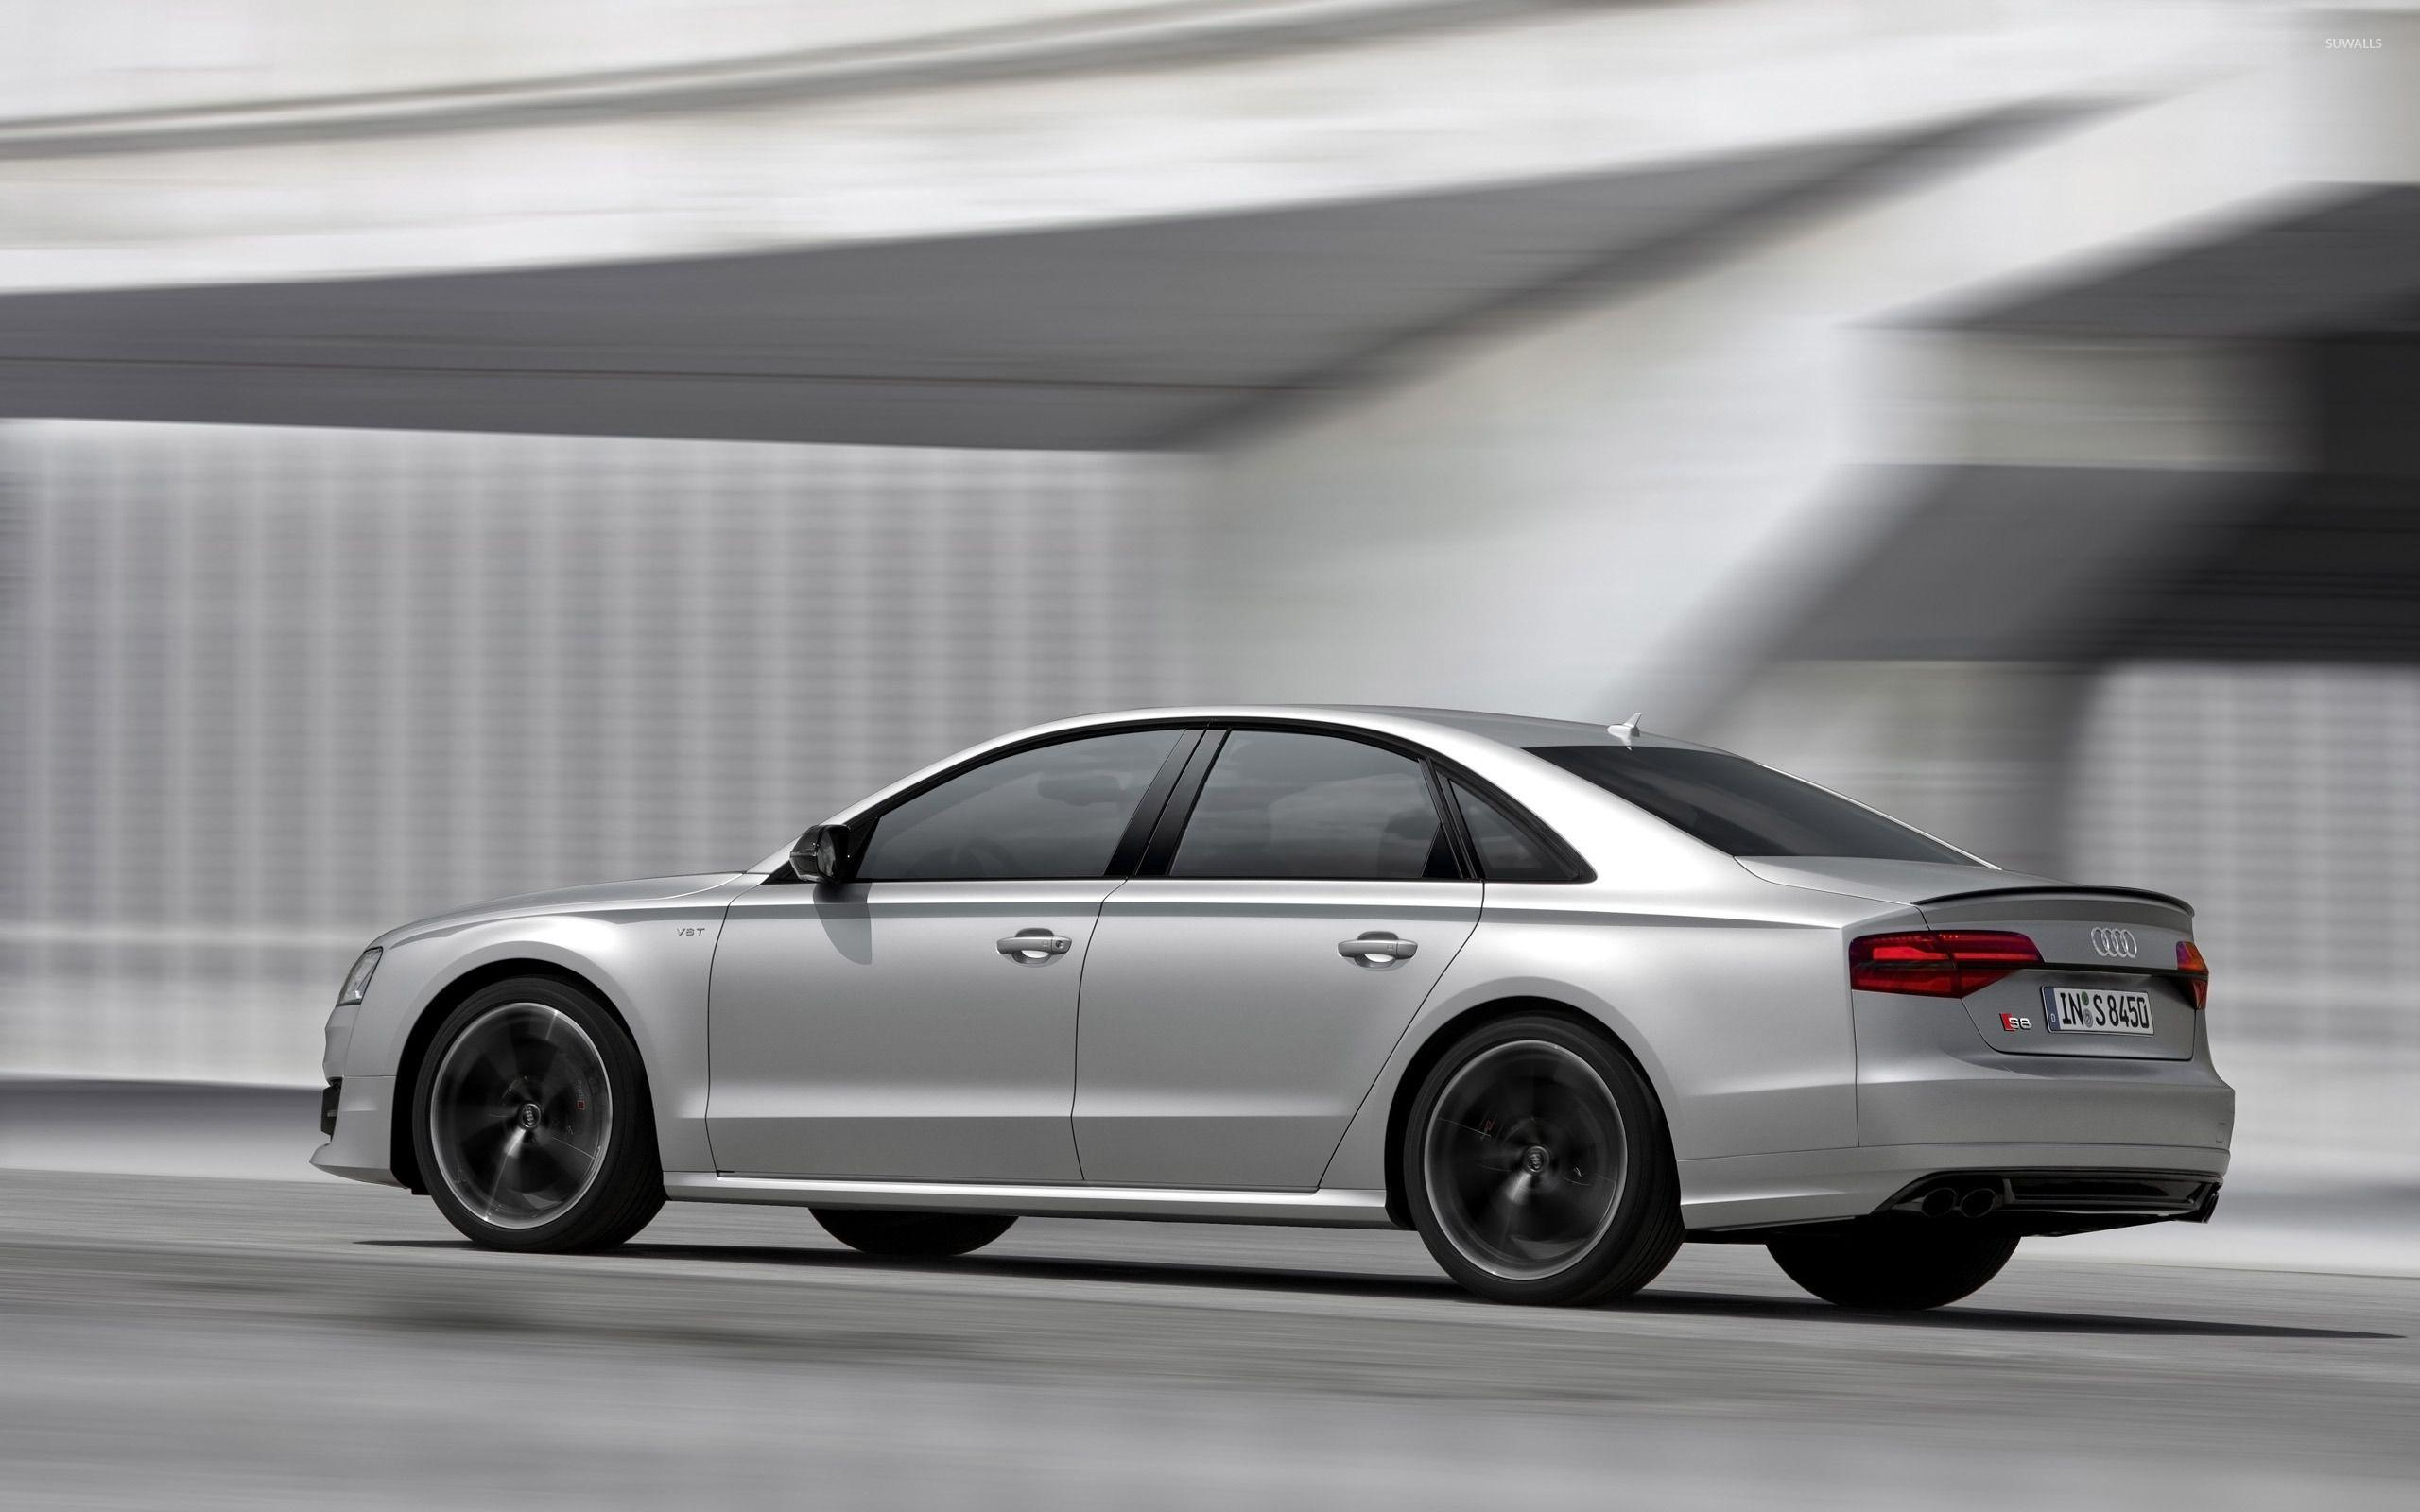 2016 Silver Audi S8 side view wallpapers